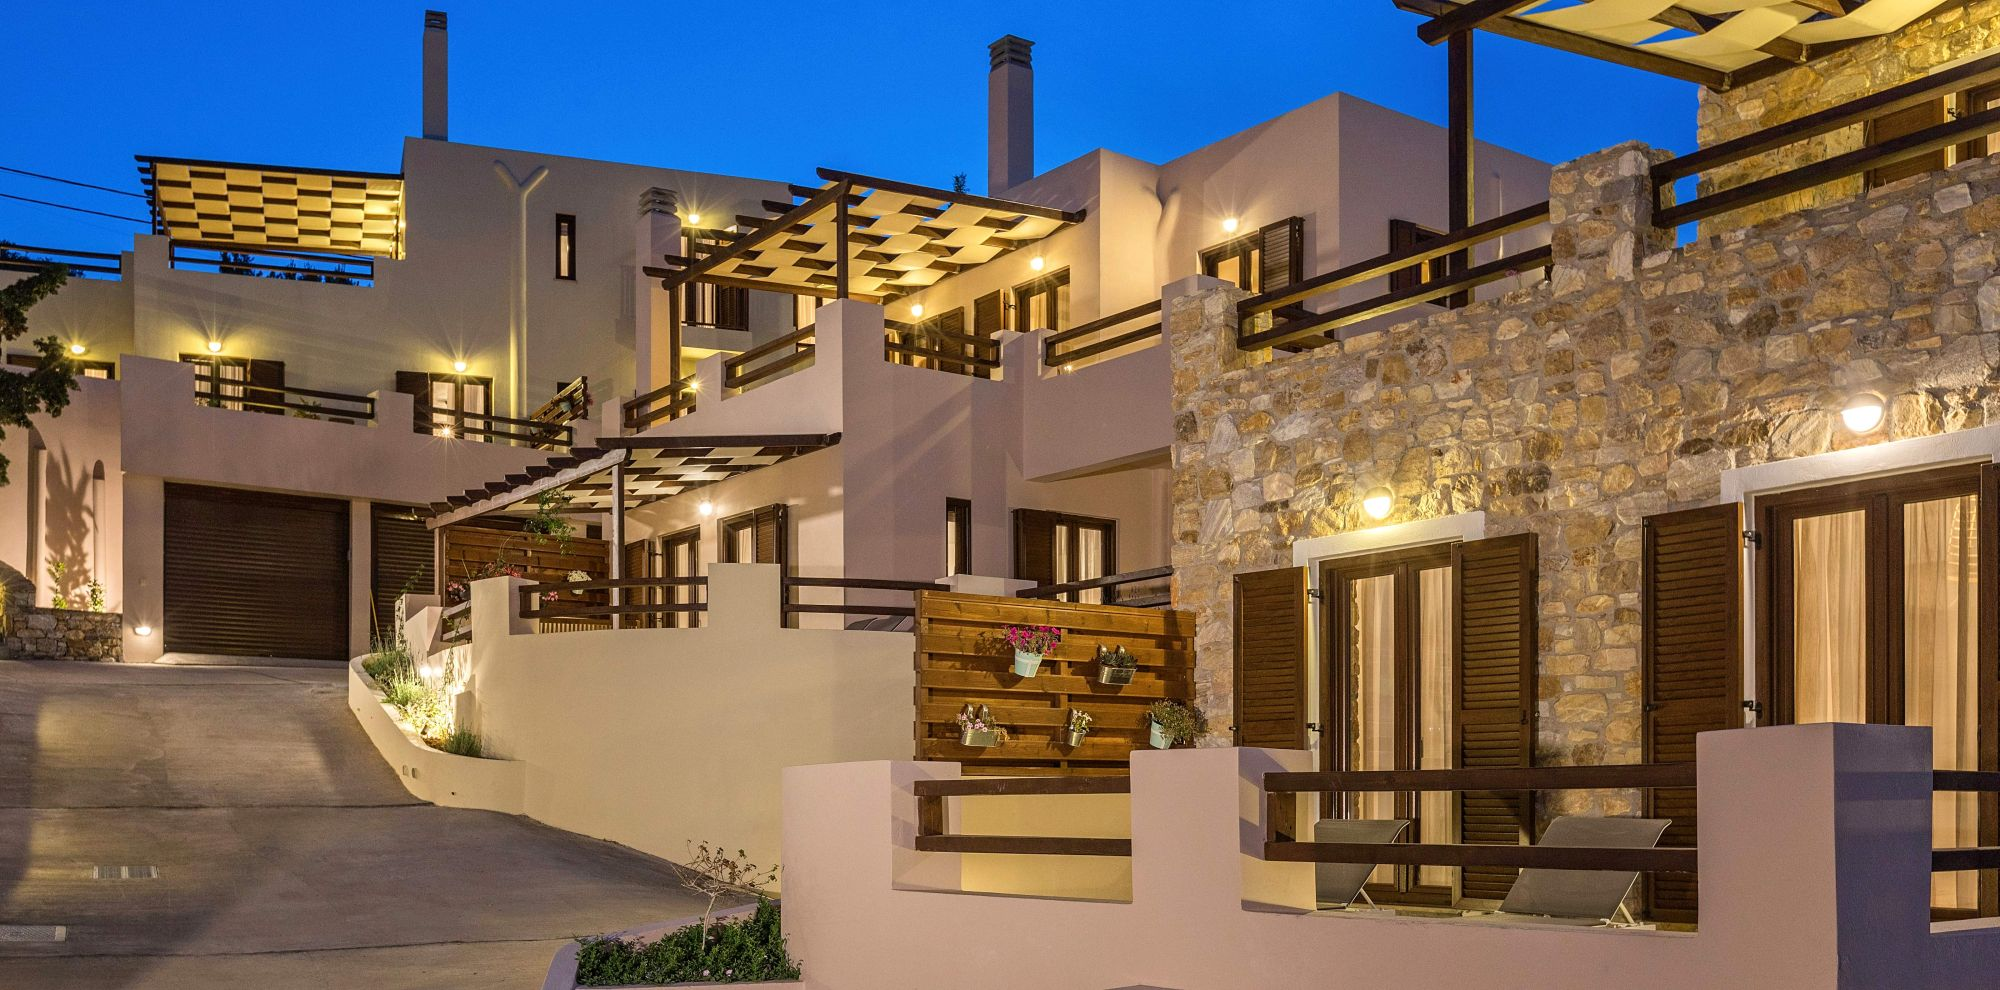 Night external view of Syra Suites residences in Syros island.